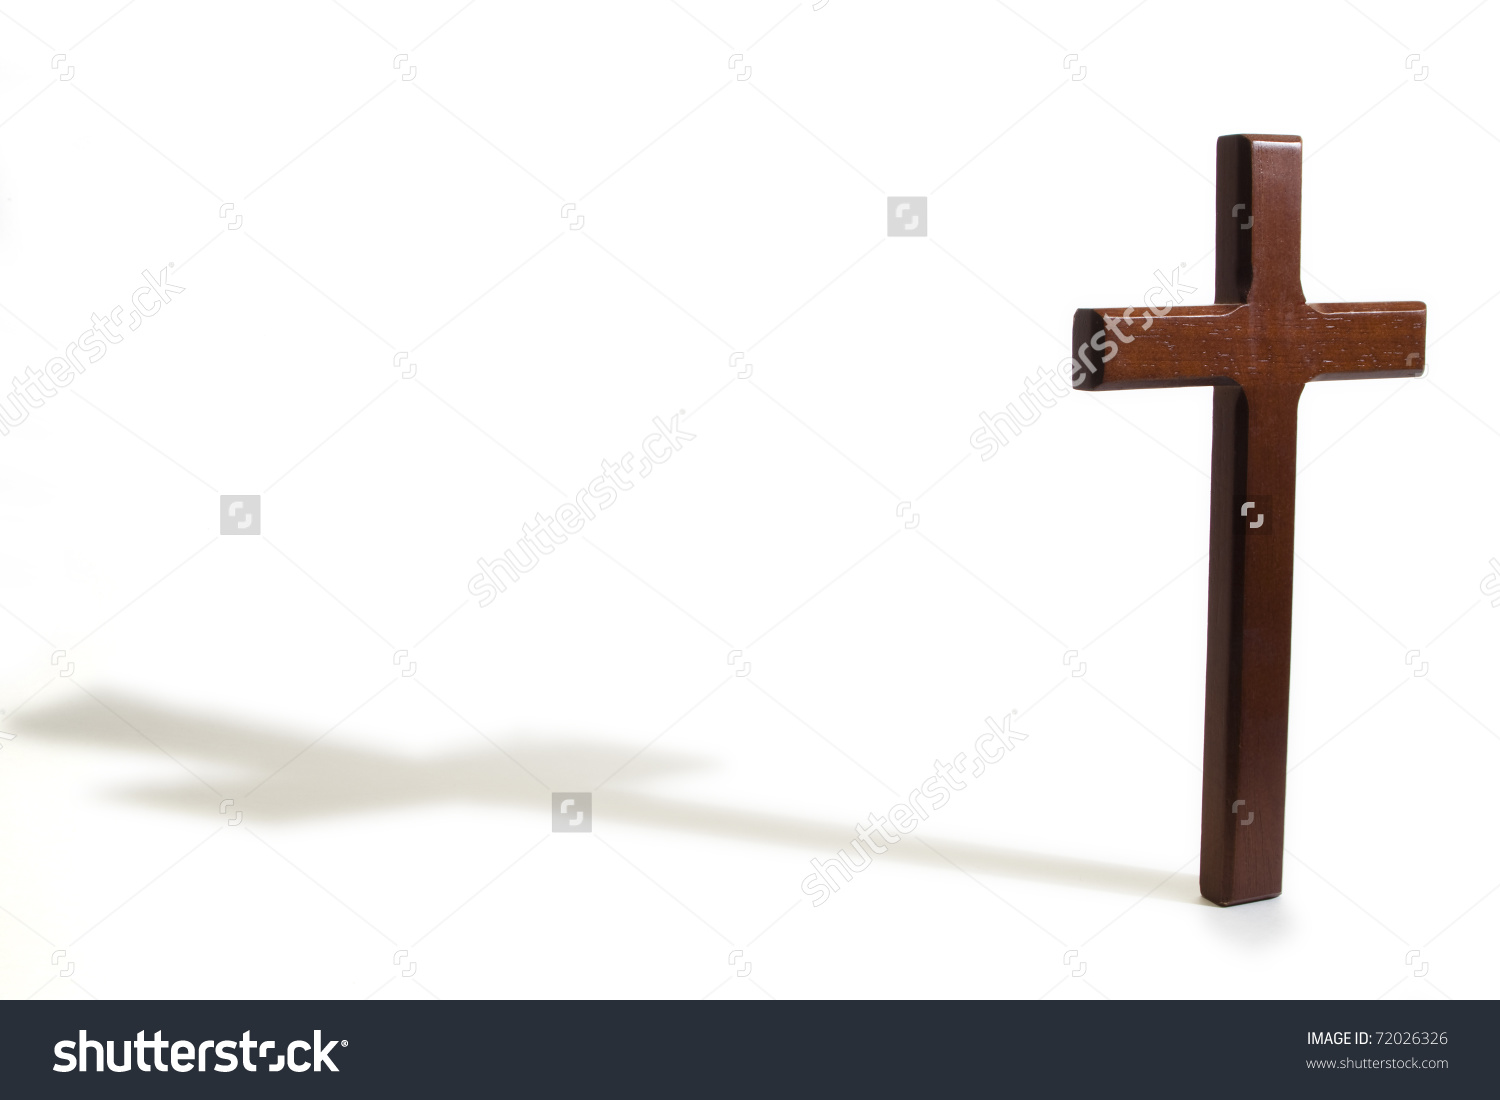 Wooden Cross Casting Shadow On White Stock Photo 72026326.